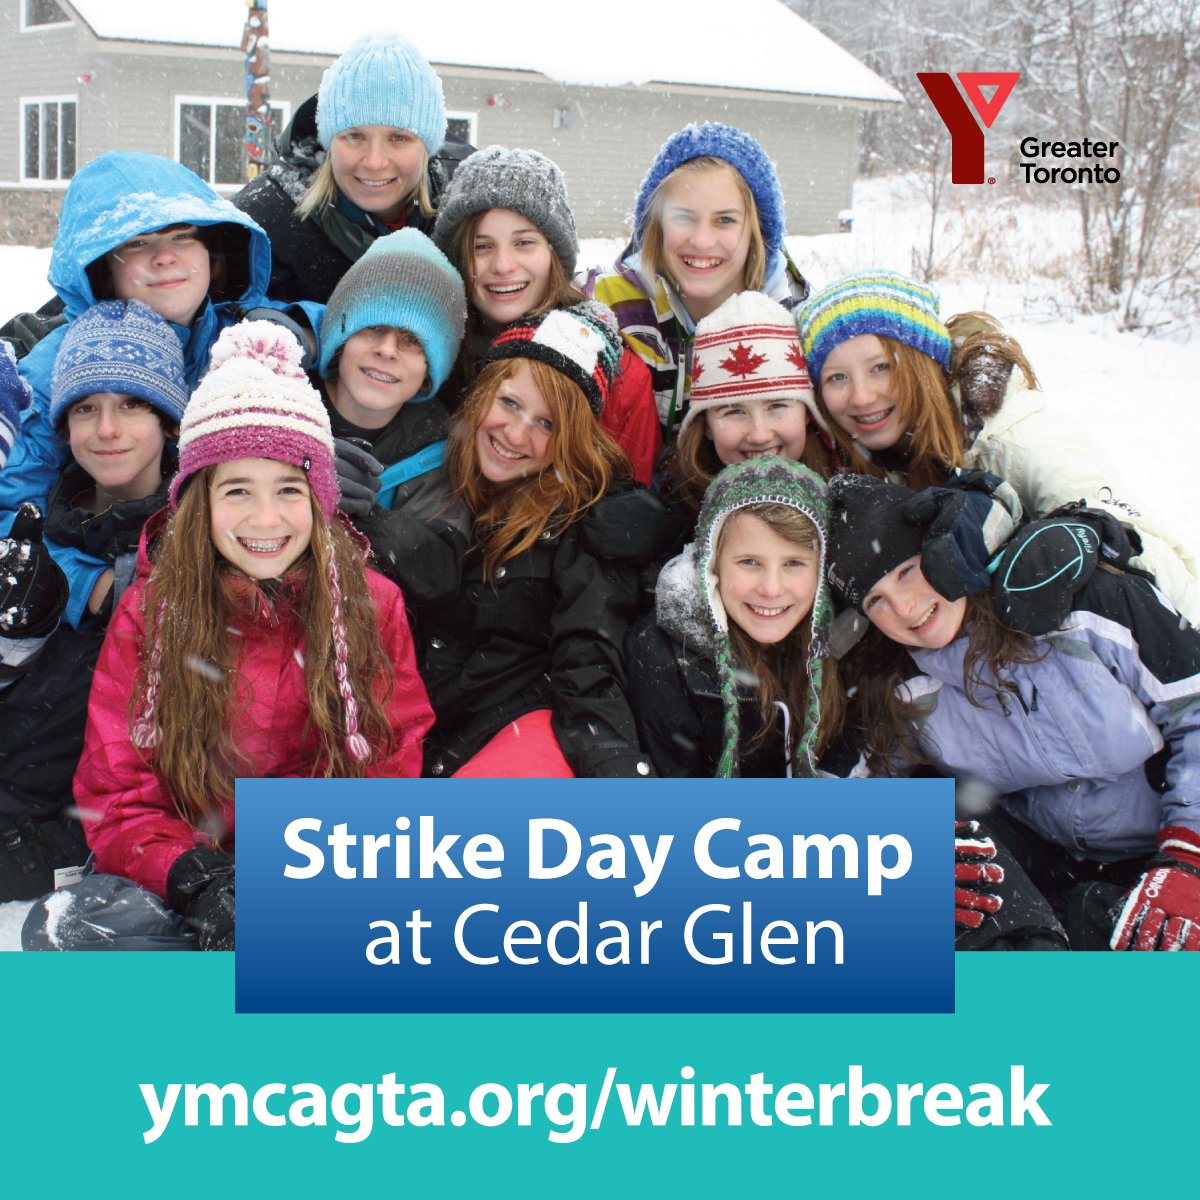 January 20 & 21, 2020 9:00 am–4:00 pm *Extended care: 7:30 am–6:00 pm  With school boards on one-day strikes, YMCA Cedar Glen is offering day camp programs! Campers aged 4 to 12 can explore nature, use the climbing wall, do arts & crafts, enjoy the campfire, play games, and more! pic.twitter.com/cUcr6aHHq2